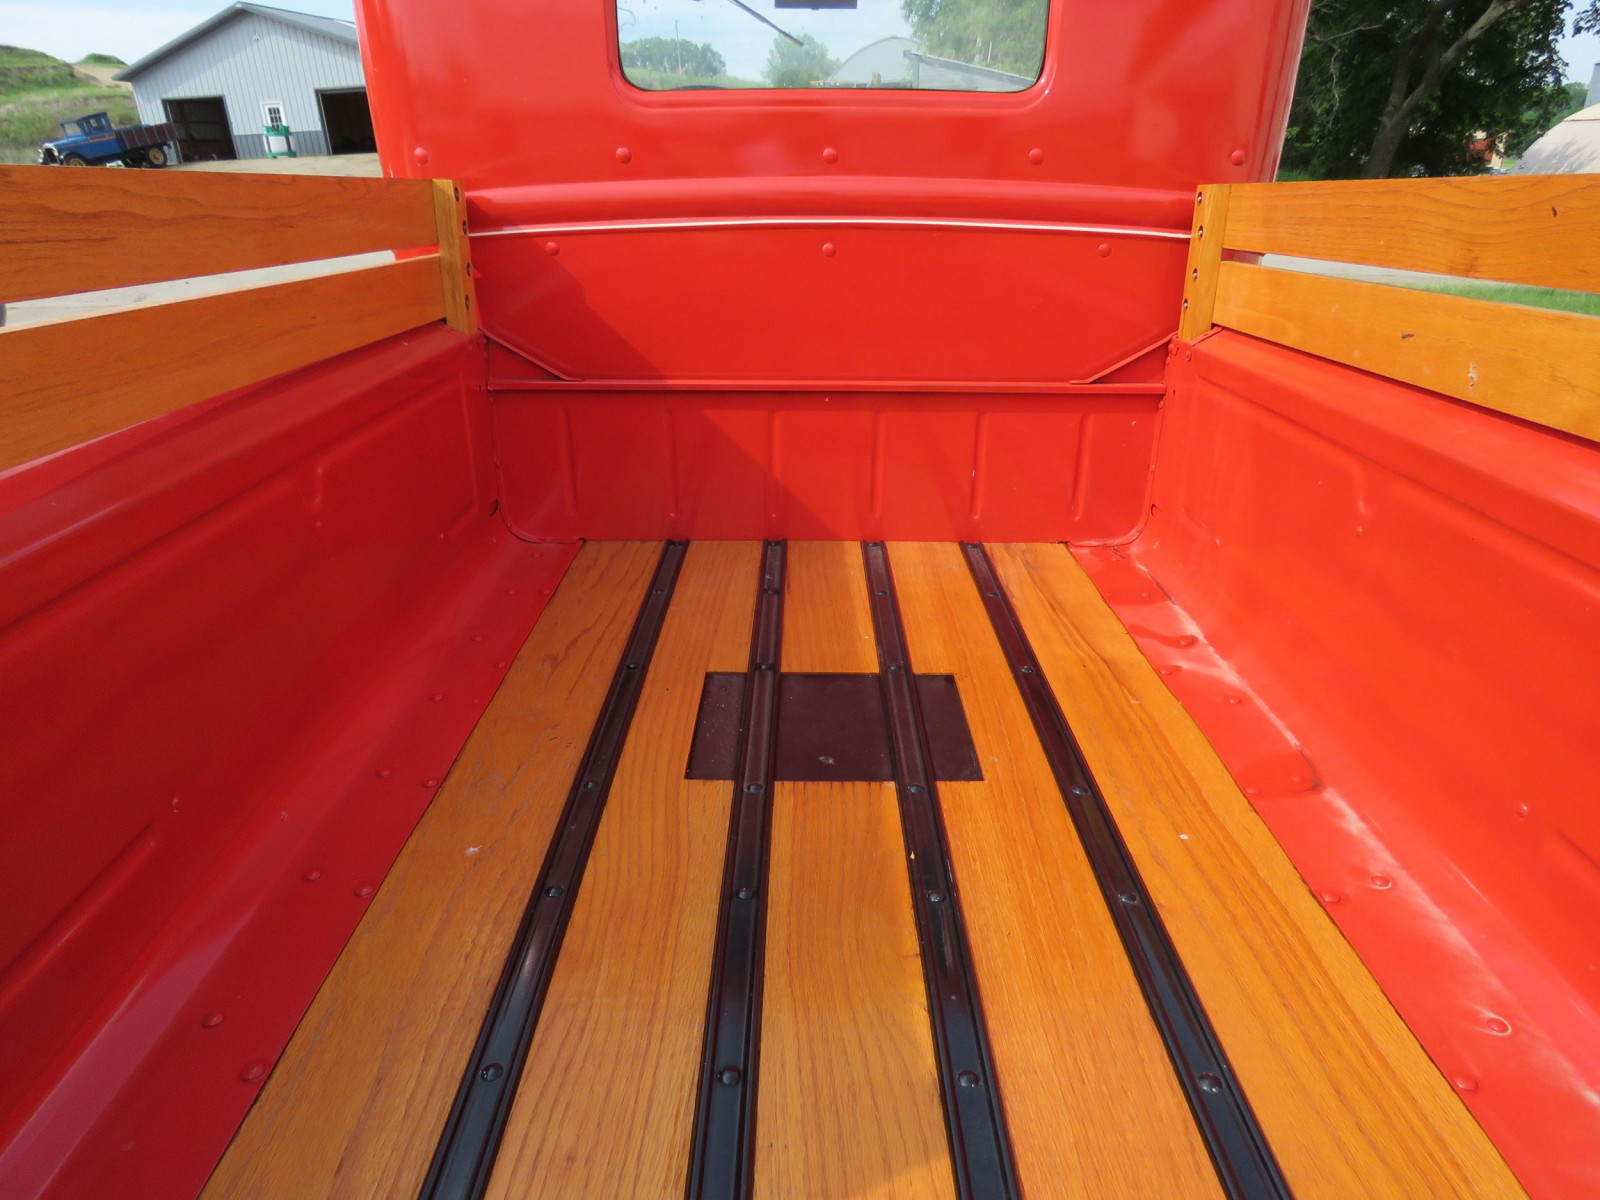 1931 Ford Model A Pickup - Image 6